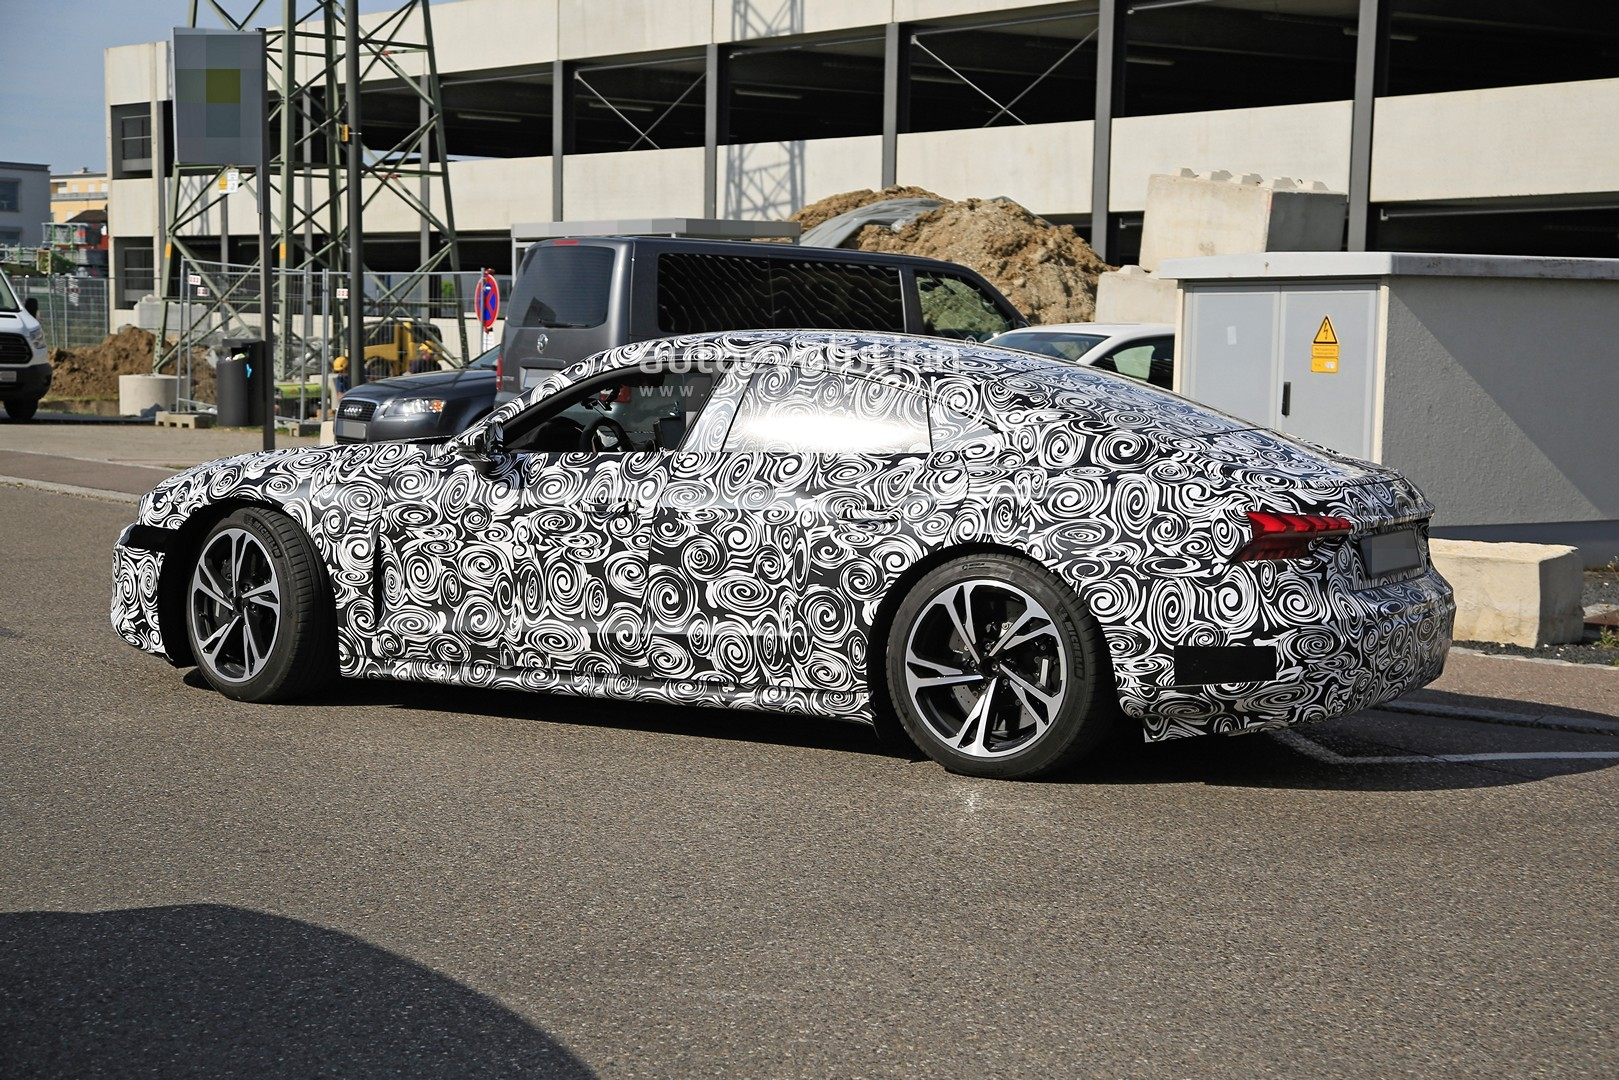 2021-audi-​e-tron-gt-​spotted-10​0000-ev-ge​tting-read​y-for-prod​uction_7